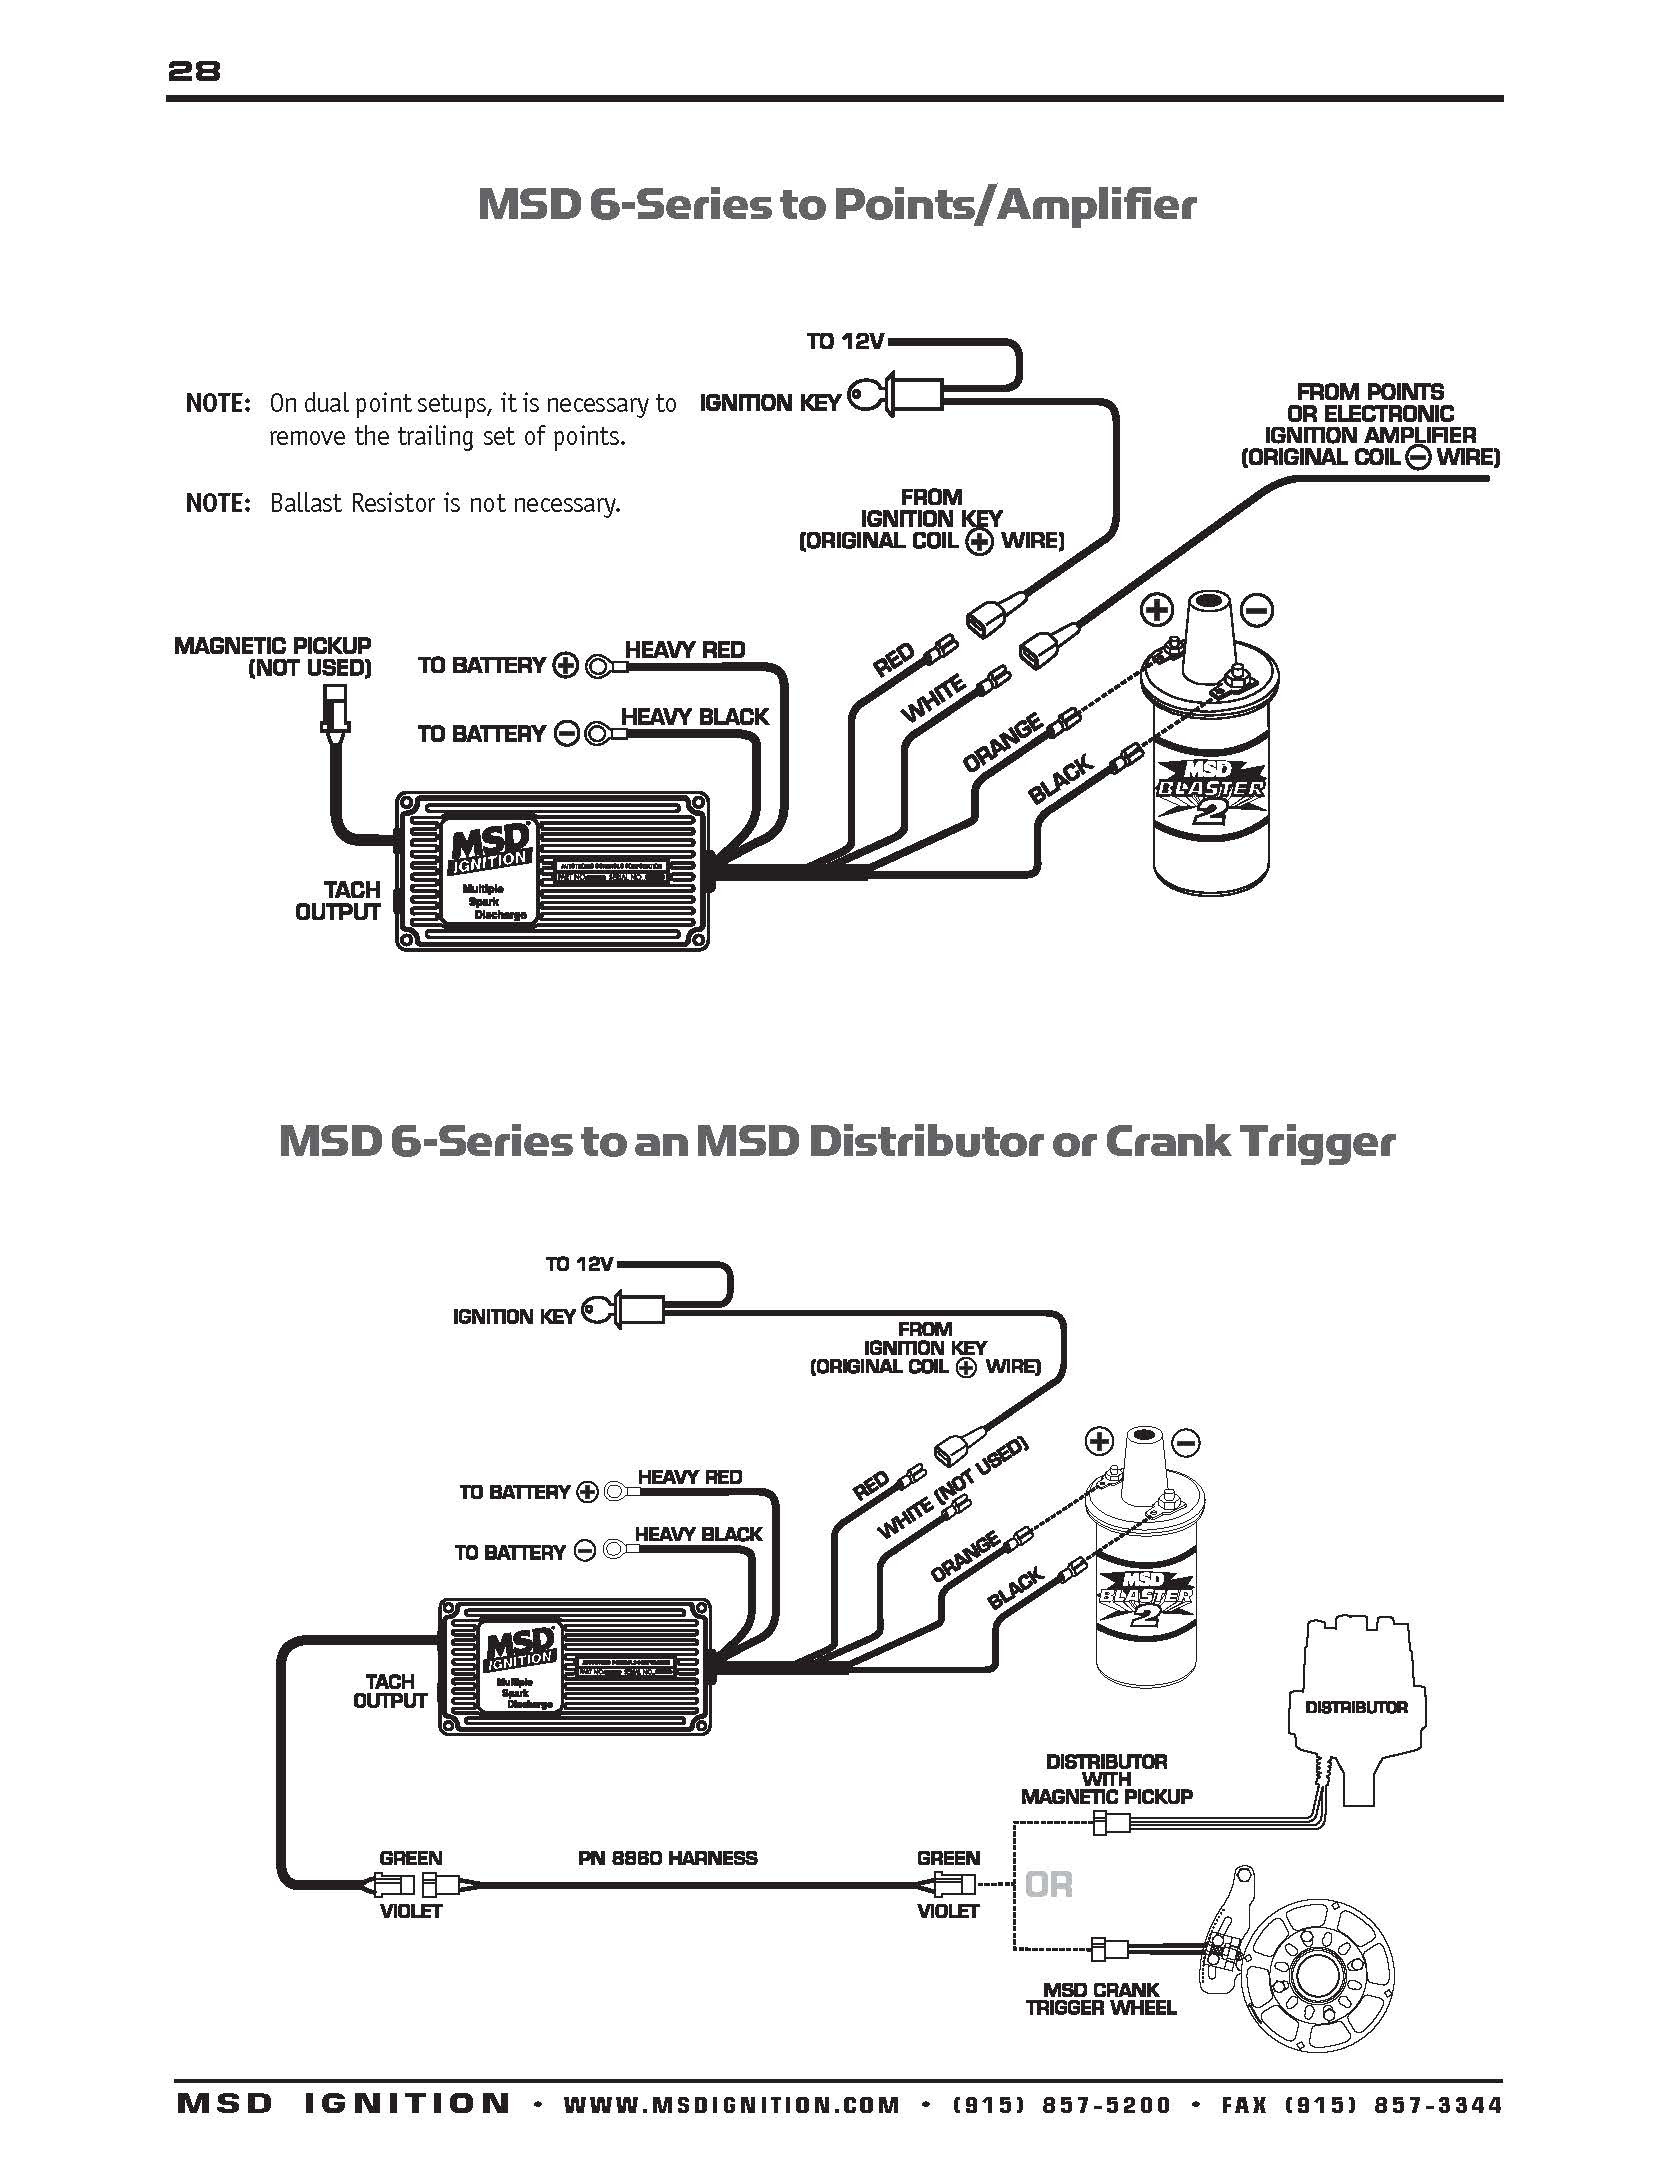 Wiring Diagram For And Accel Distributor Mallory Ignition Throughout - Mallory Ignition Wiring Diagram